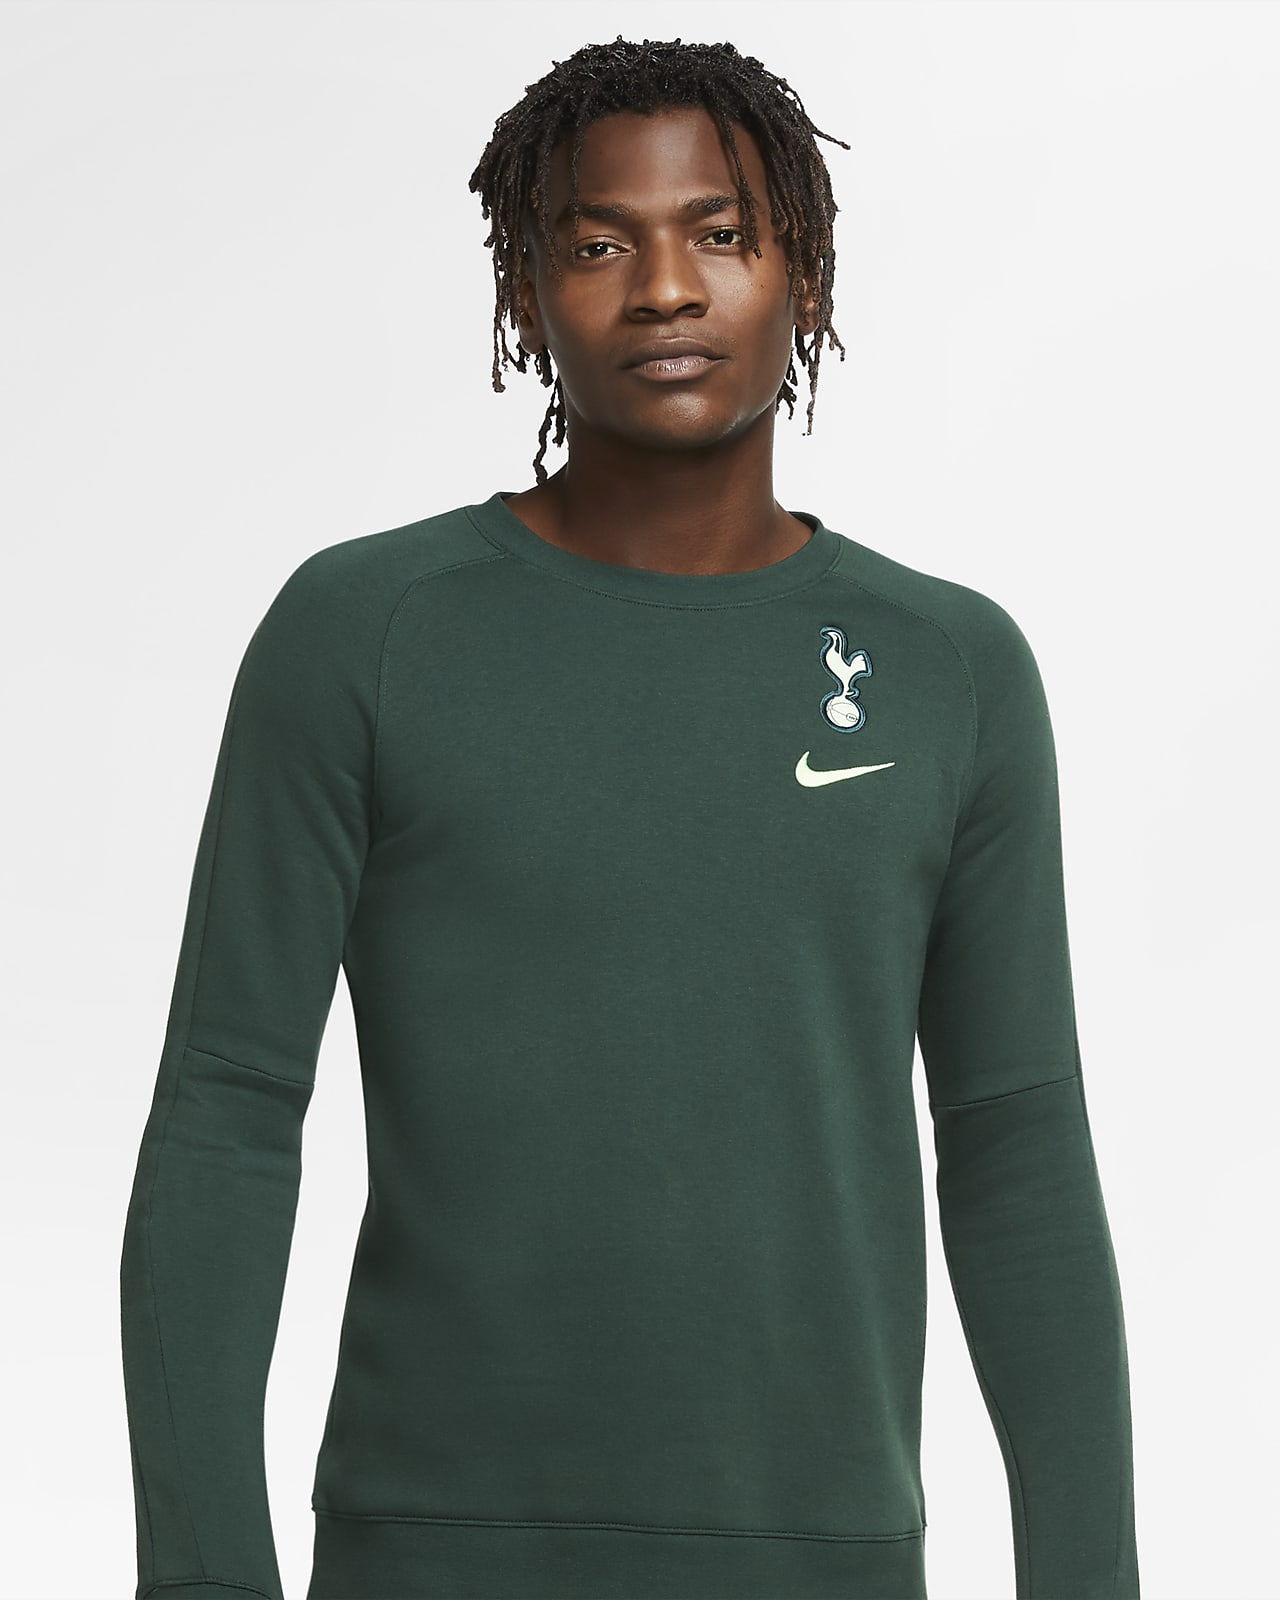 Tottenham Hotspur Men's Fleece Long-Sleeve Football Crew